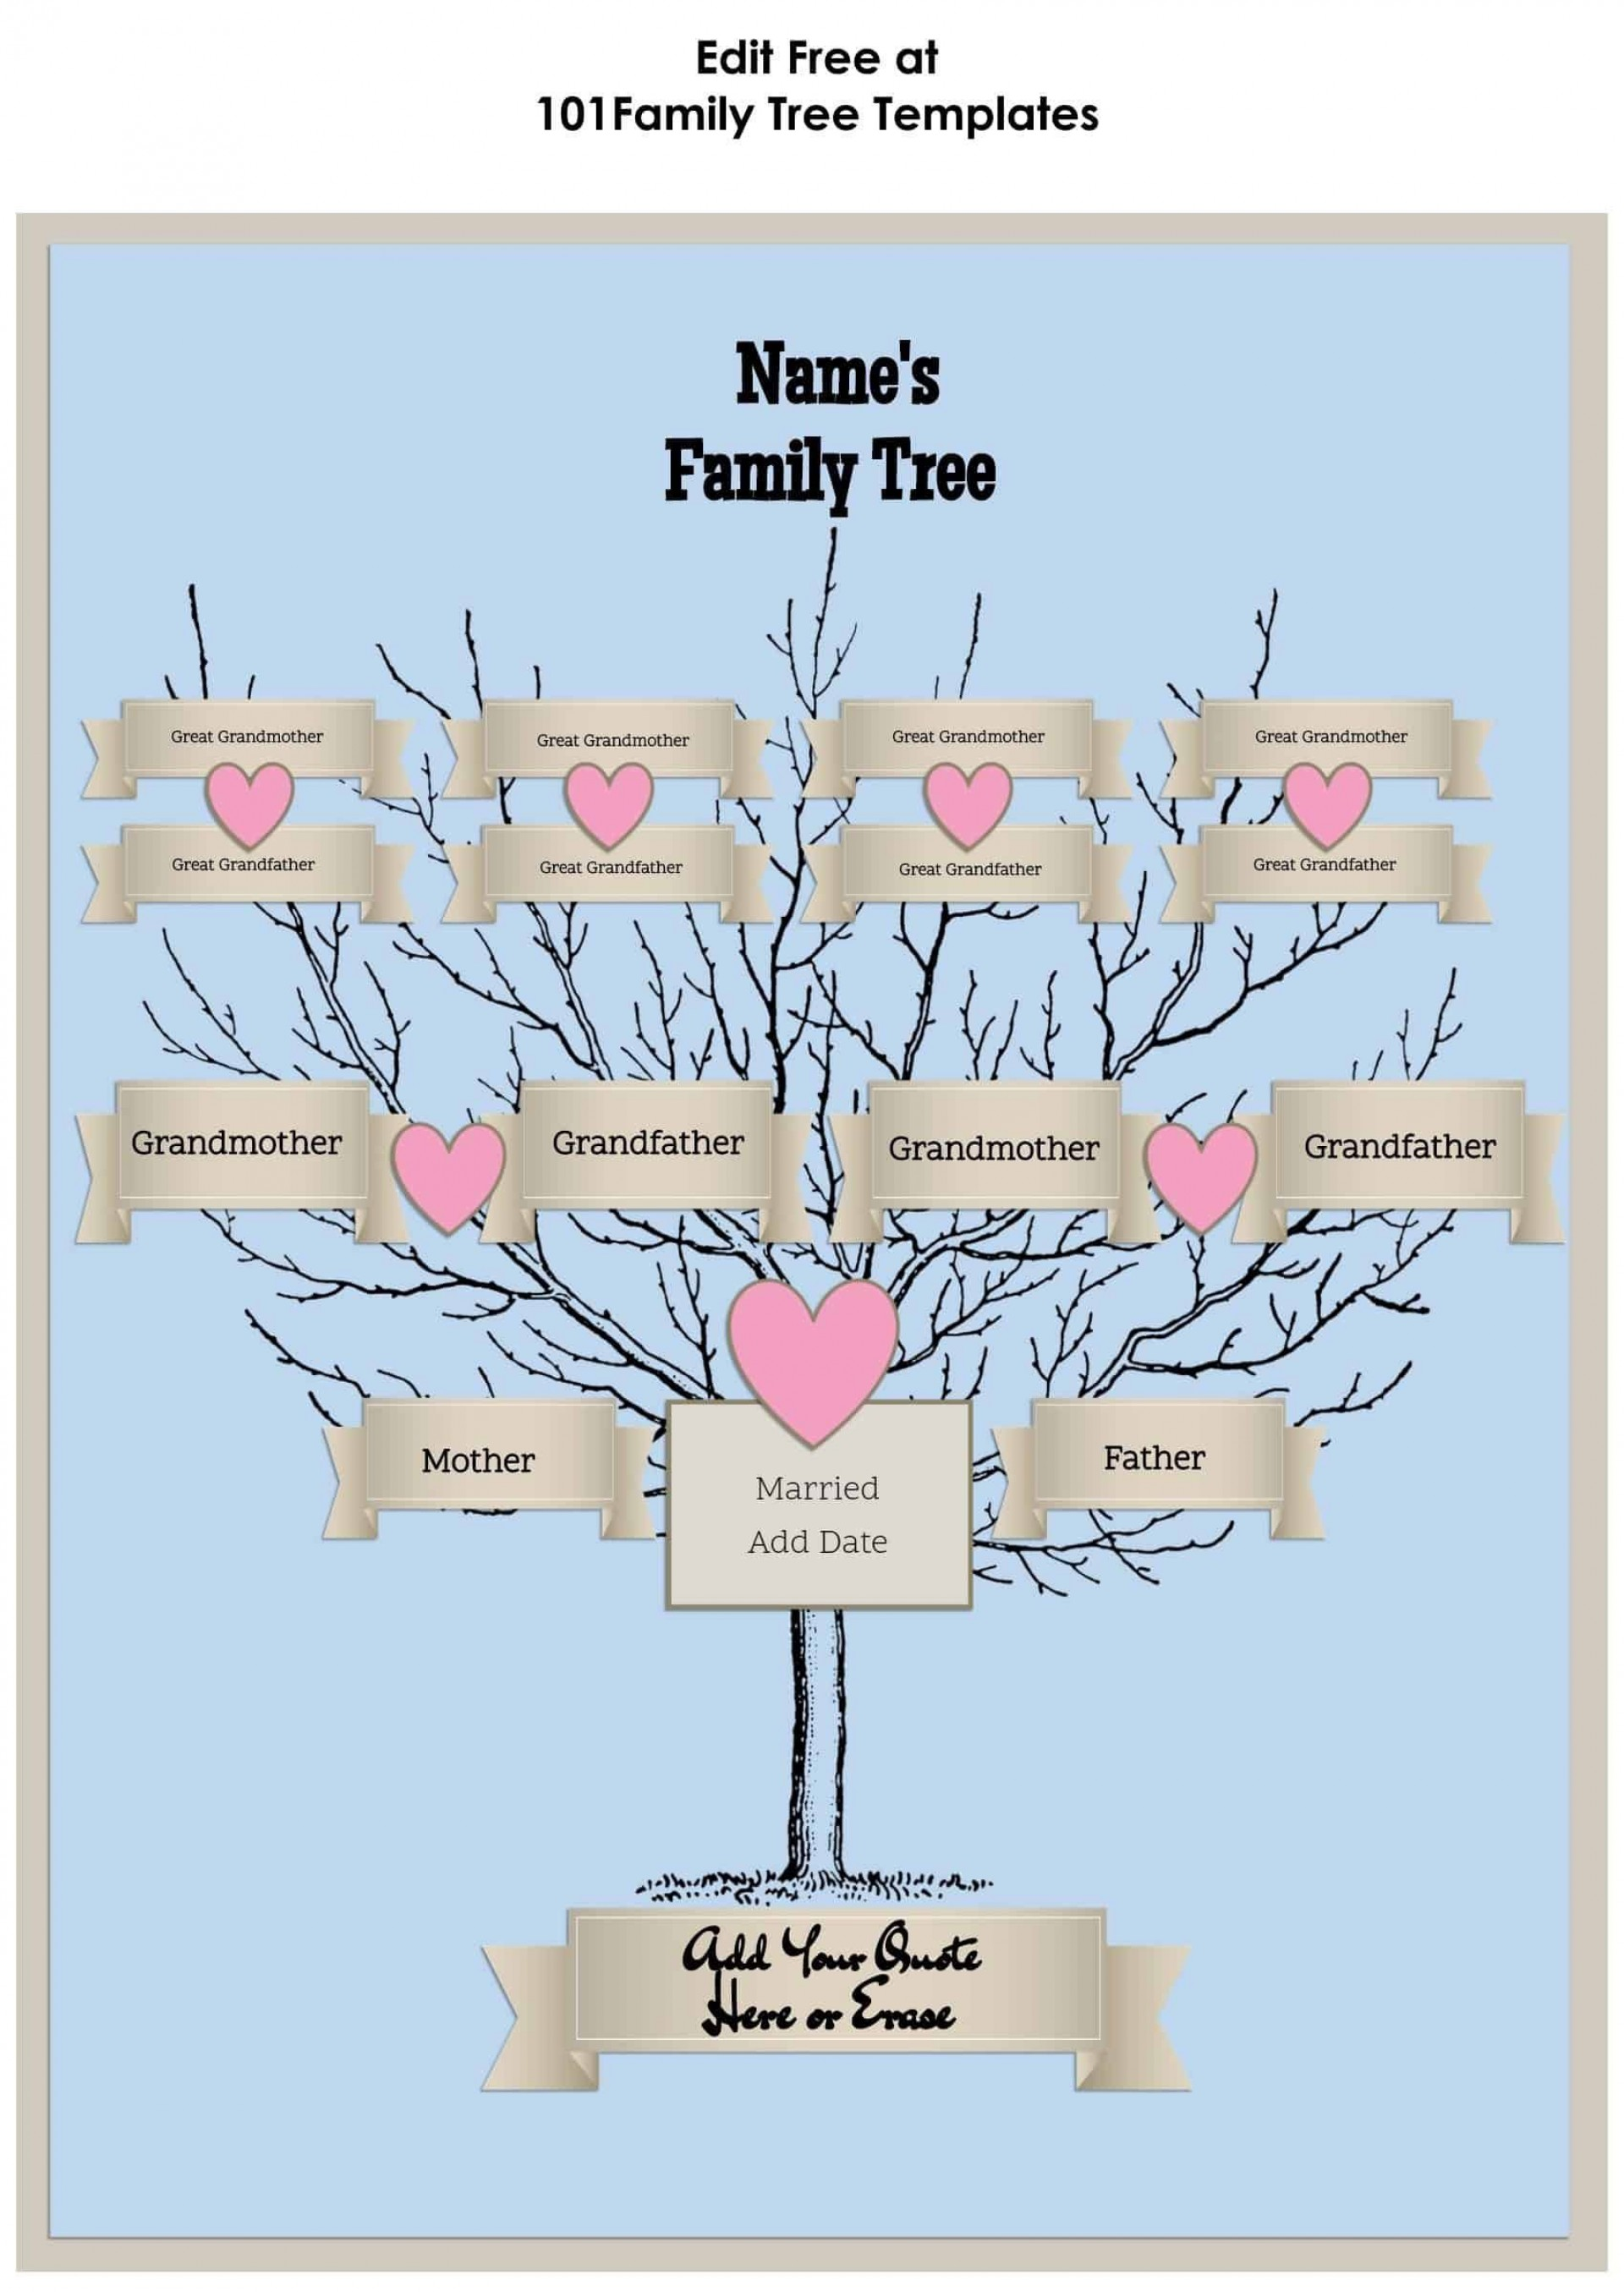 007 Unique Editable Family Tree Template Online Free High Resolution 1920